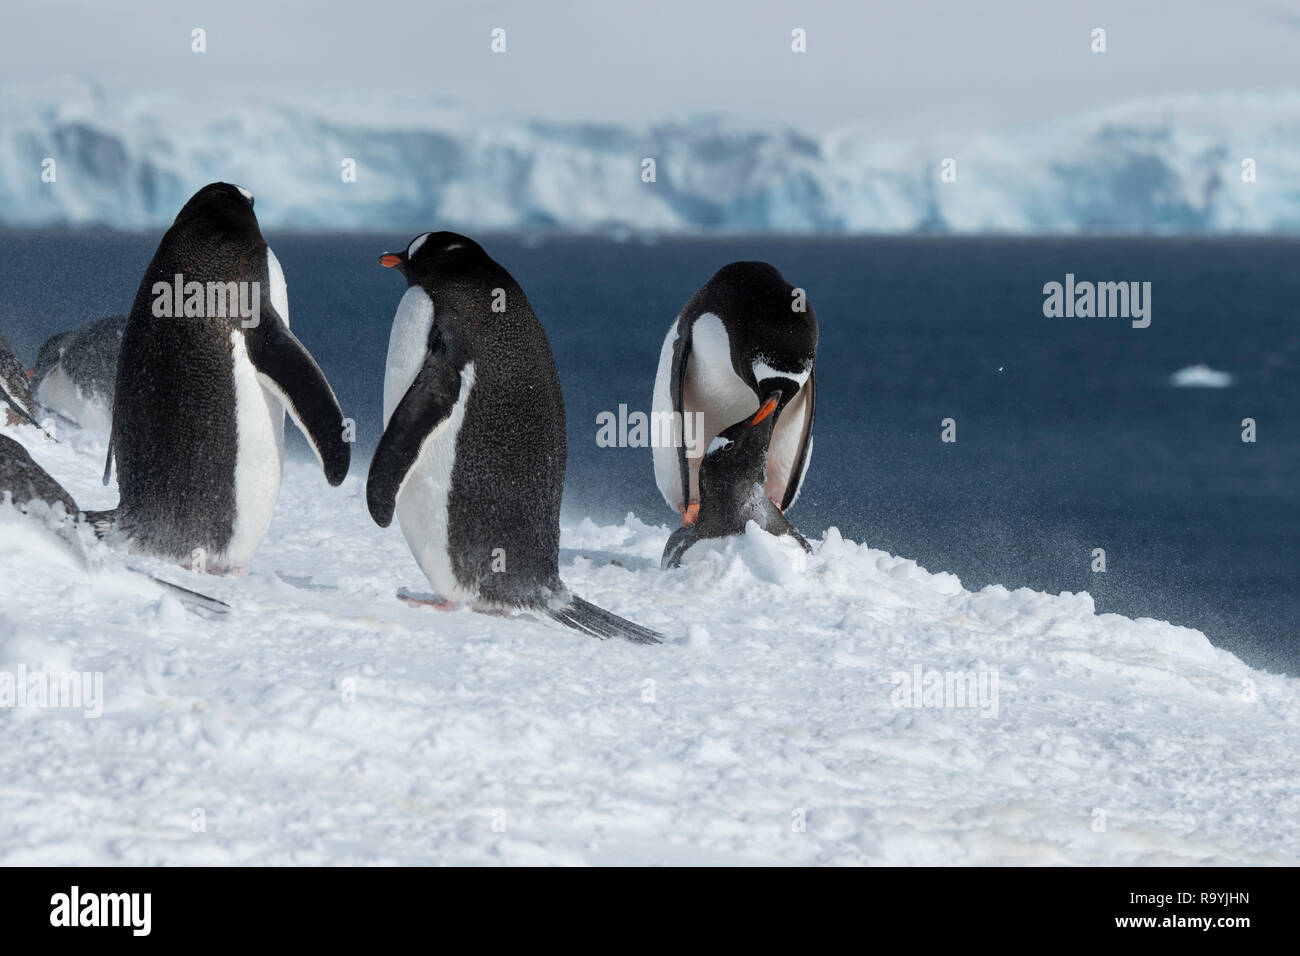 L'antarctique, du détroit de Gerlache, archipel Palmer, de l'Île Wiencke, pointe Damoy. Manchots de nidification dans la poudrerie, paire d'accouplement. Photo Stock